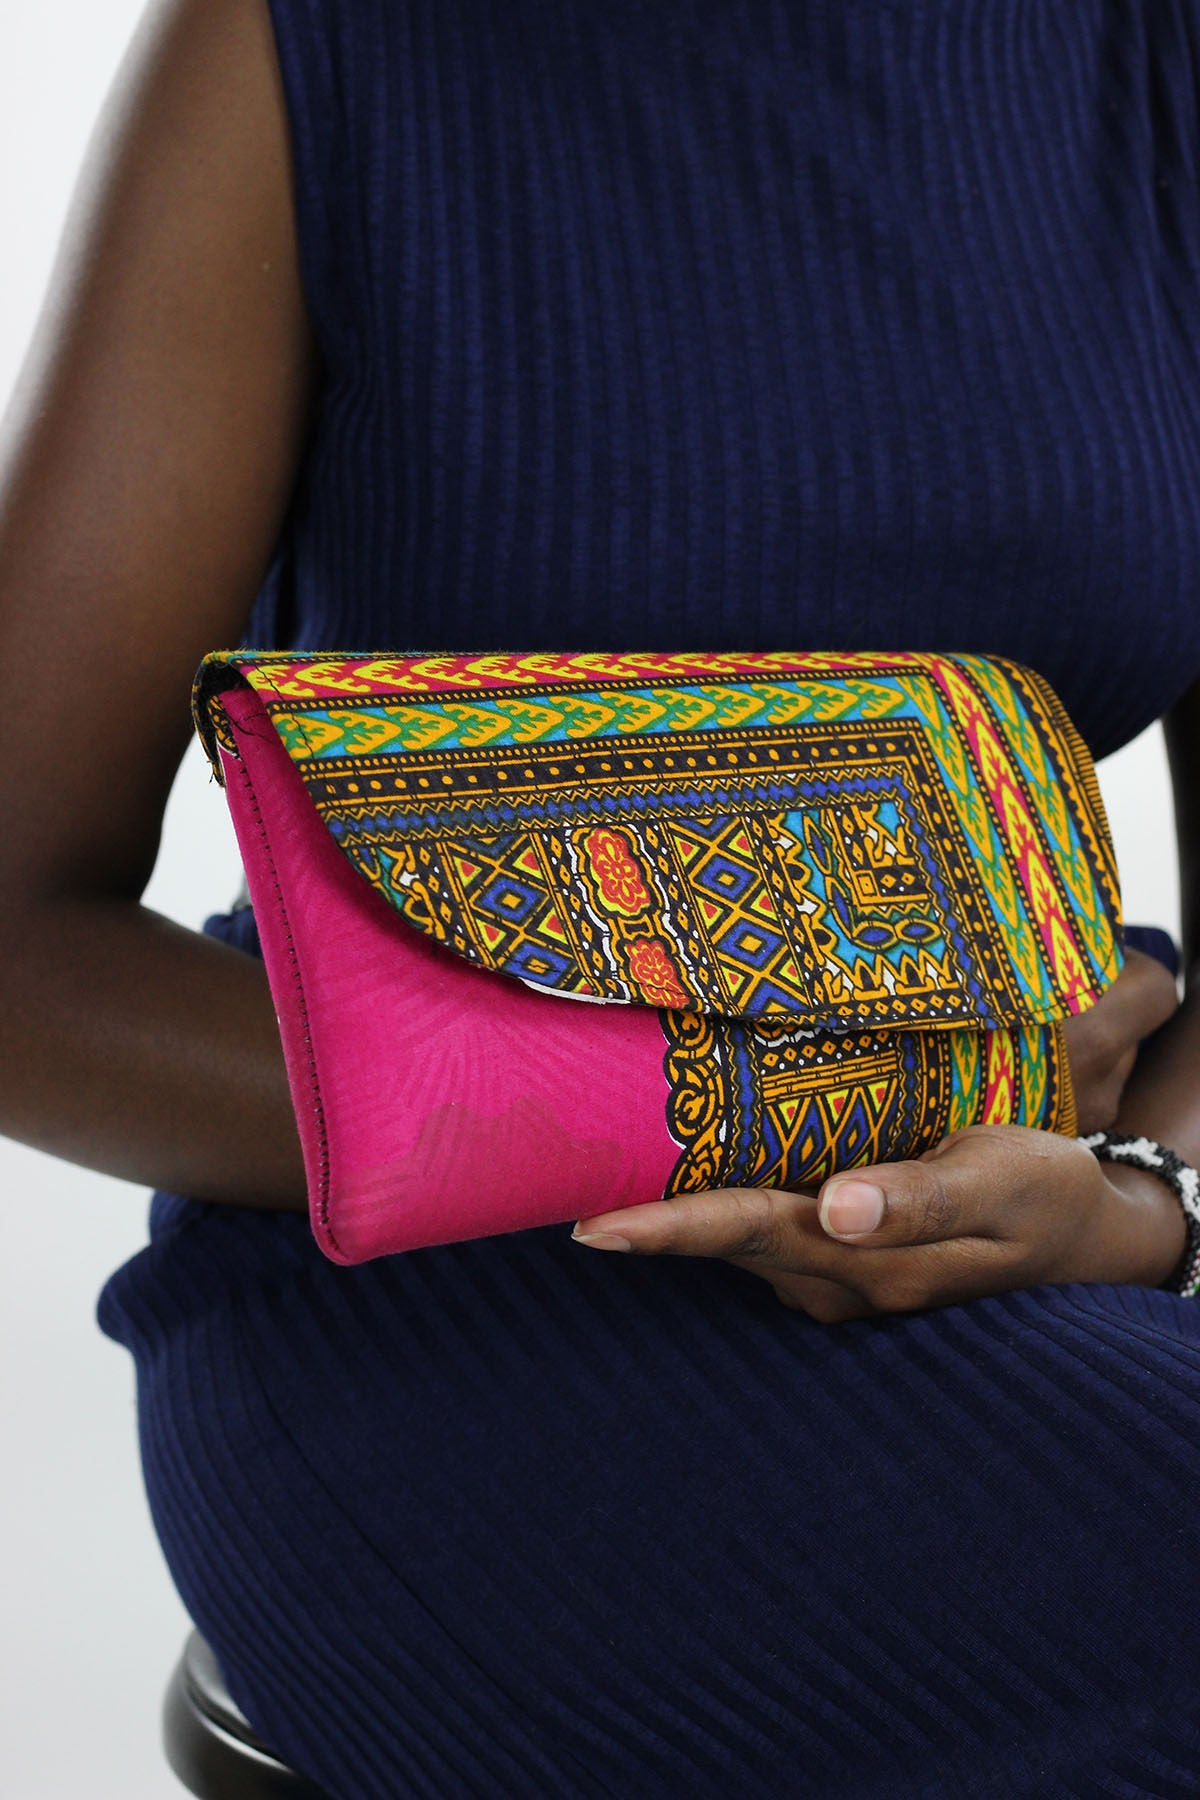 African  Dashiki Print Clutch Purse- Pink/Yellow Floral Print